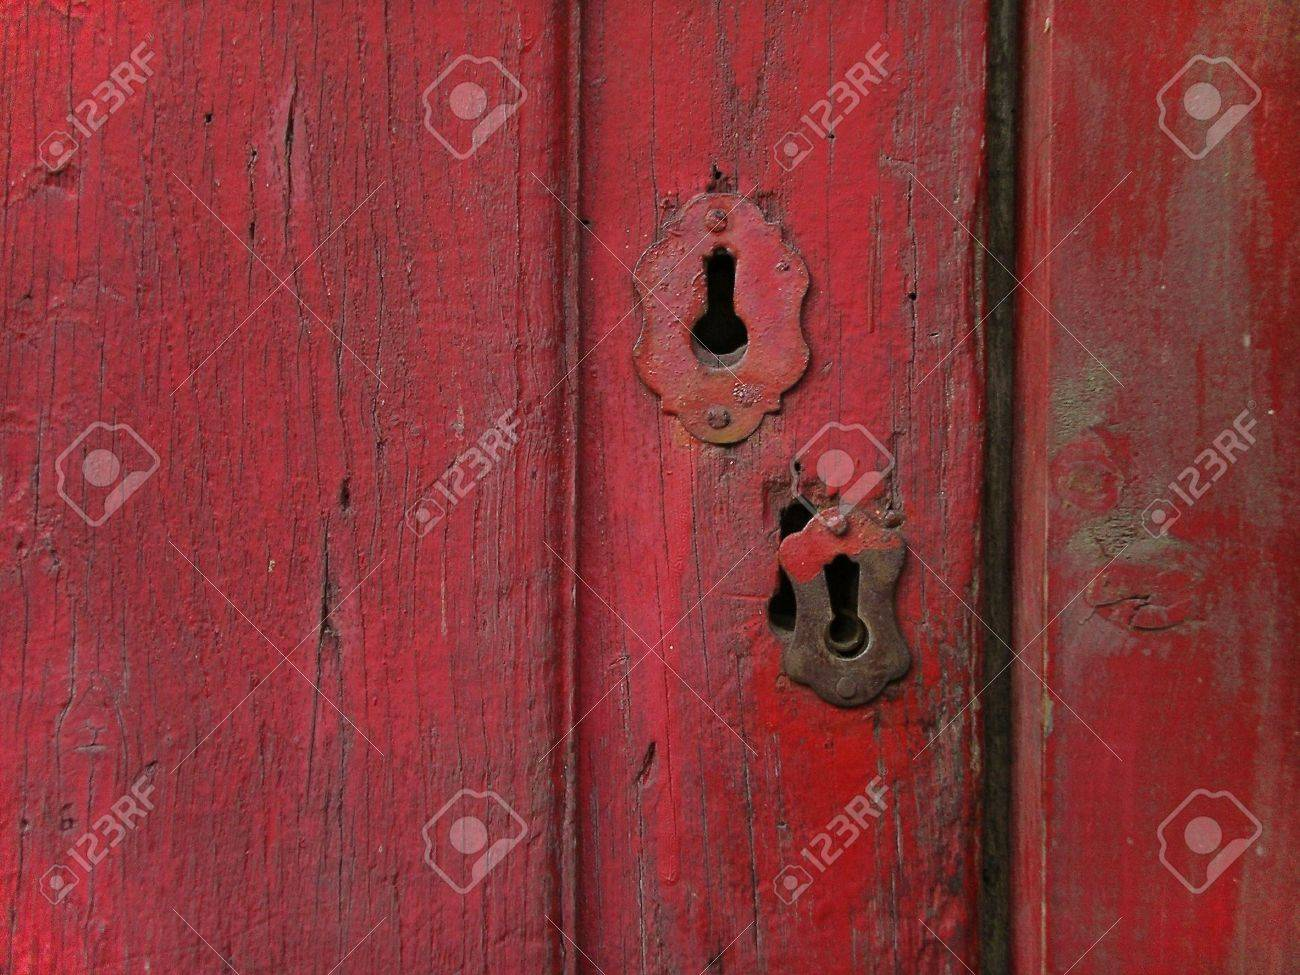 Rusty old wooden door painted in red, with metalic keyhole. Stock Photo - 2427116